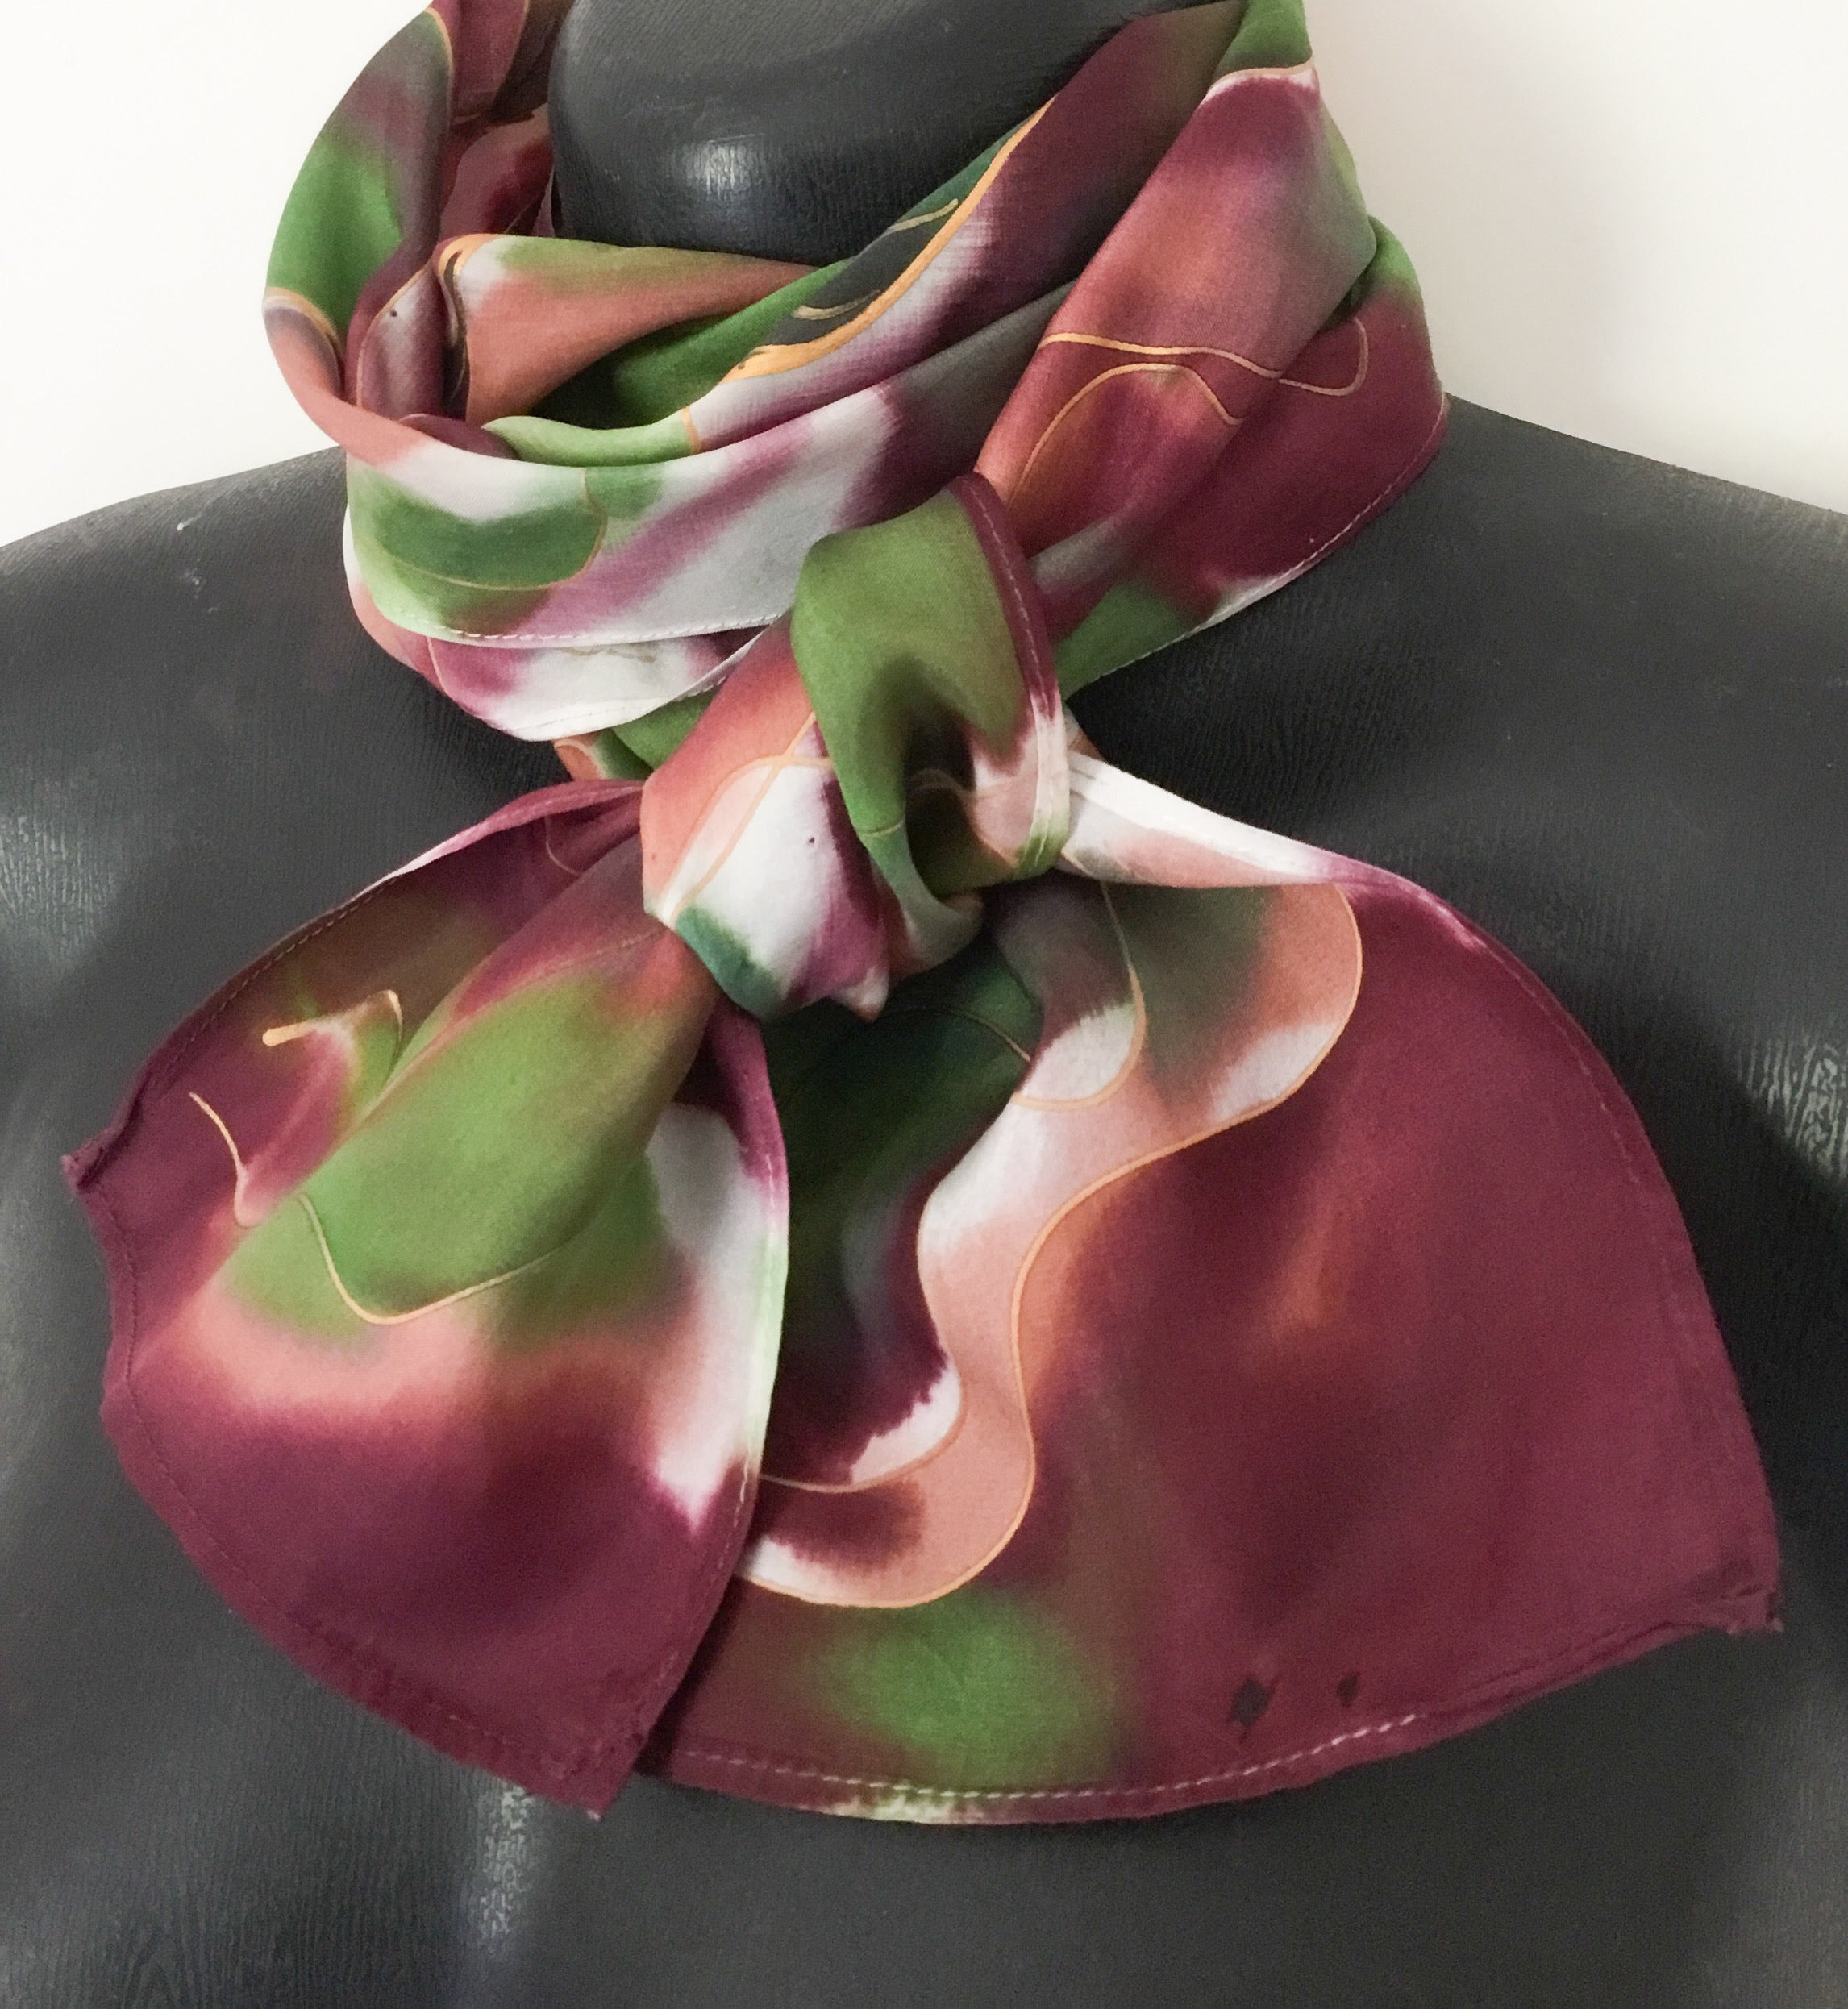 Leaves Botanical Skinny - Hand painted Silk Scarf - Satherley Silks NZ